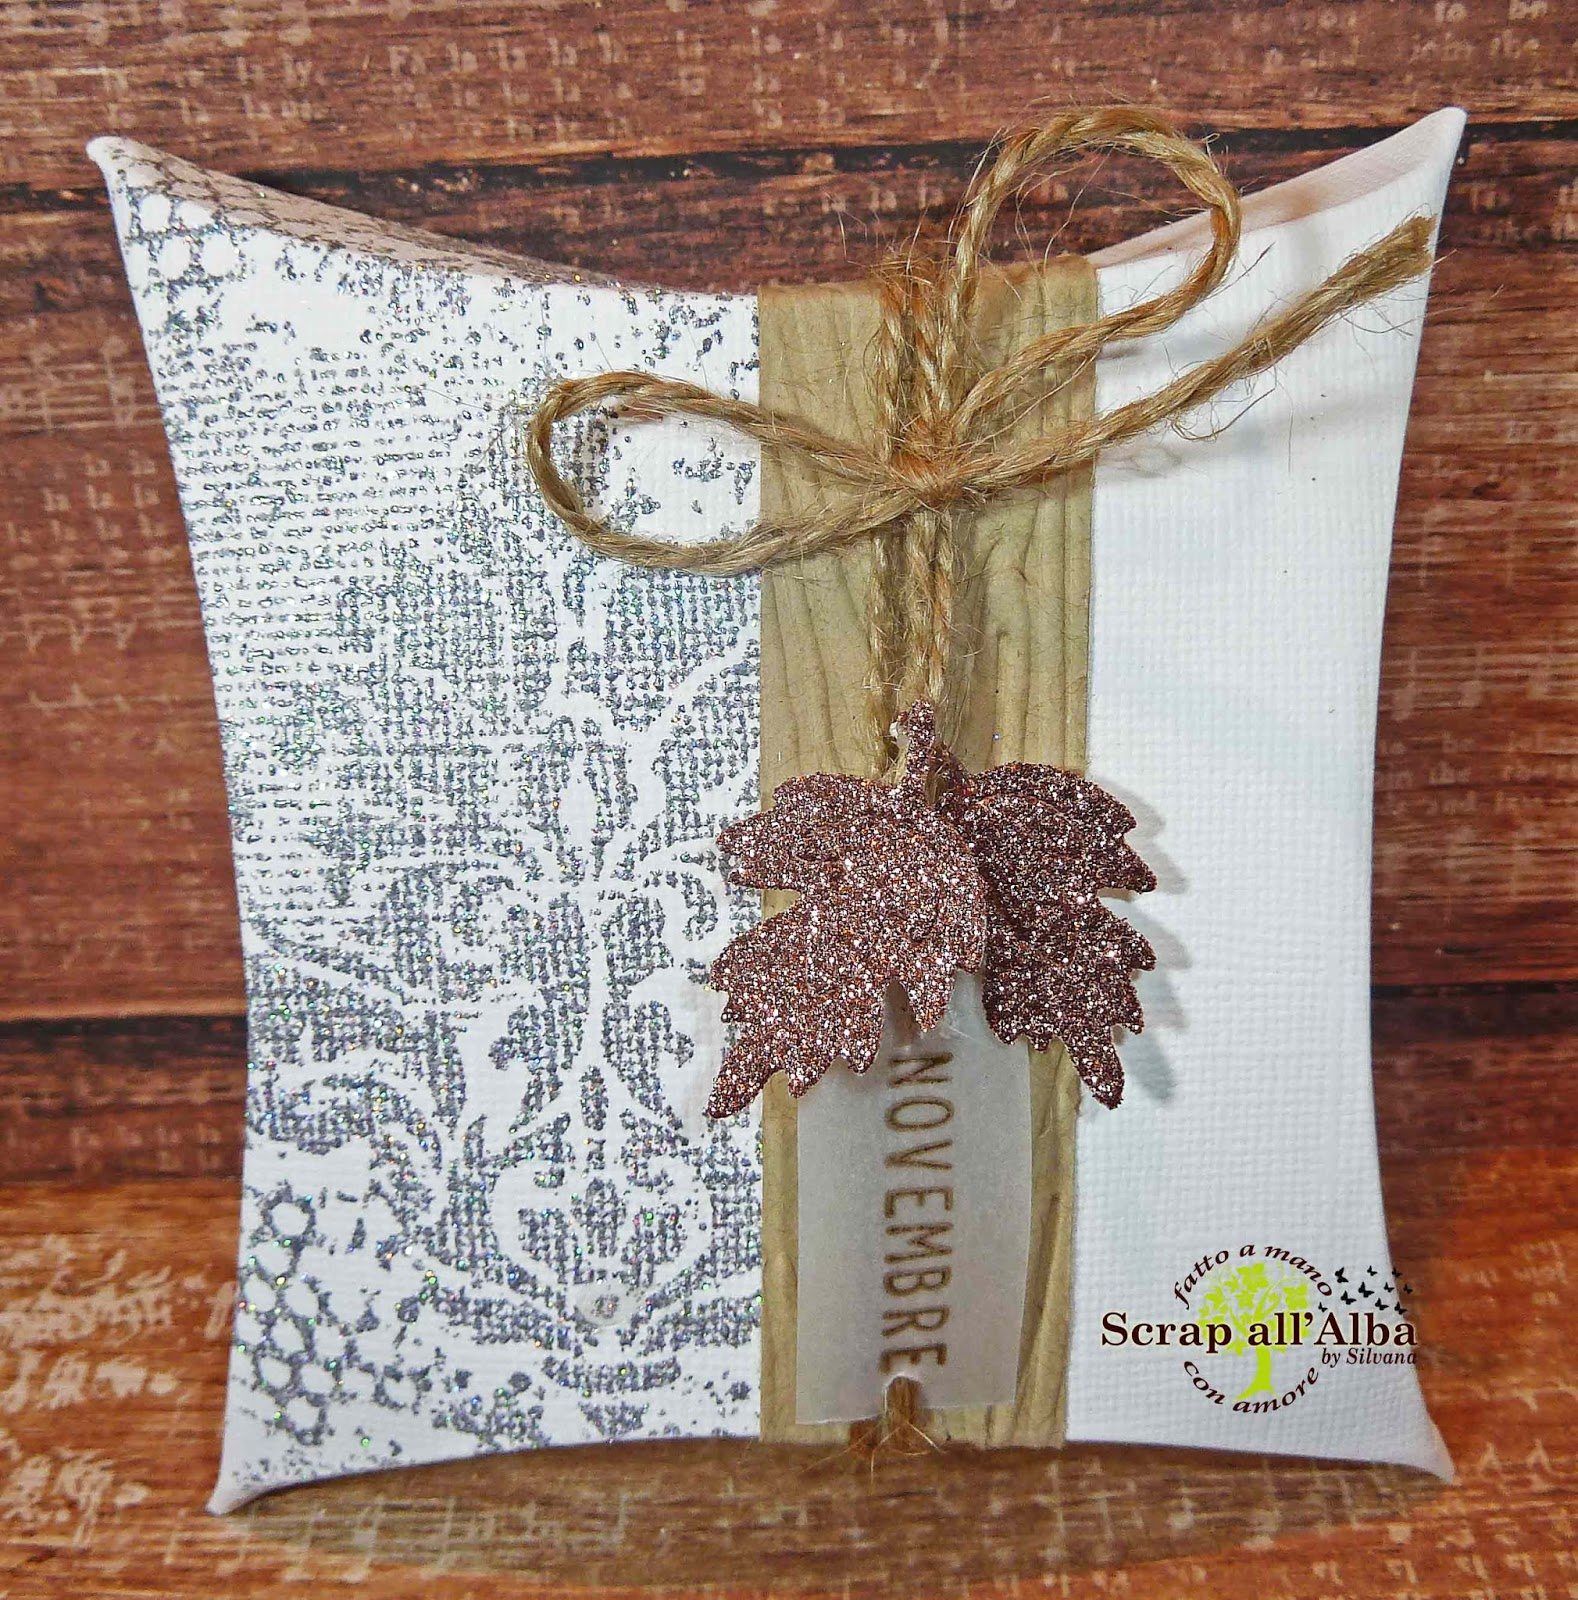 Scrap All Alba Scatolina Pillow Autunno